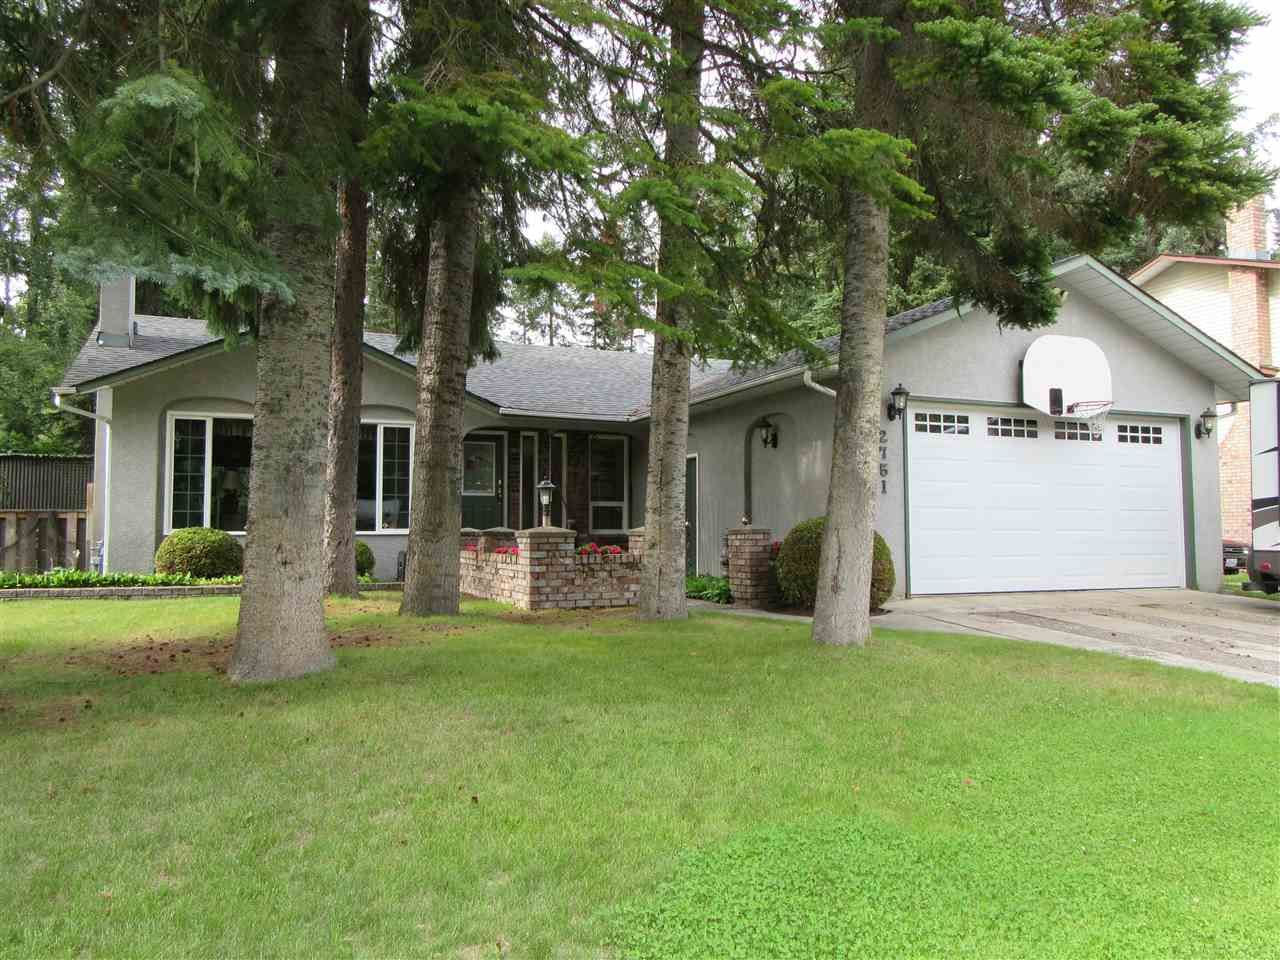 """Main Photo: 2751 WILDWOOD Crescent in Prince George: Hart Highlands House for sale in """"HART HIGHLANDS"""" (PG City North (Zone 73))  : MLS®# R2393133"""